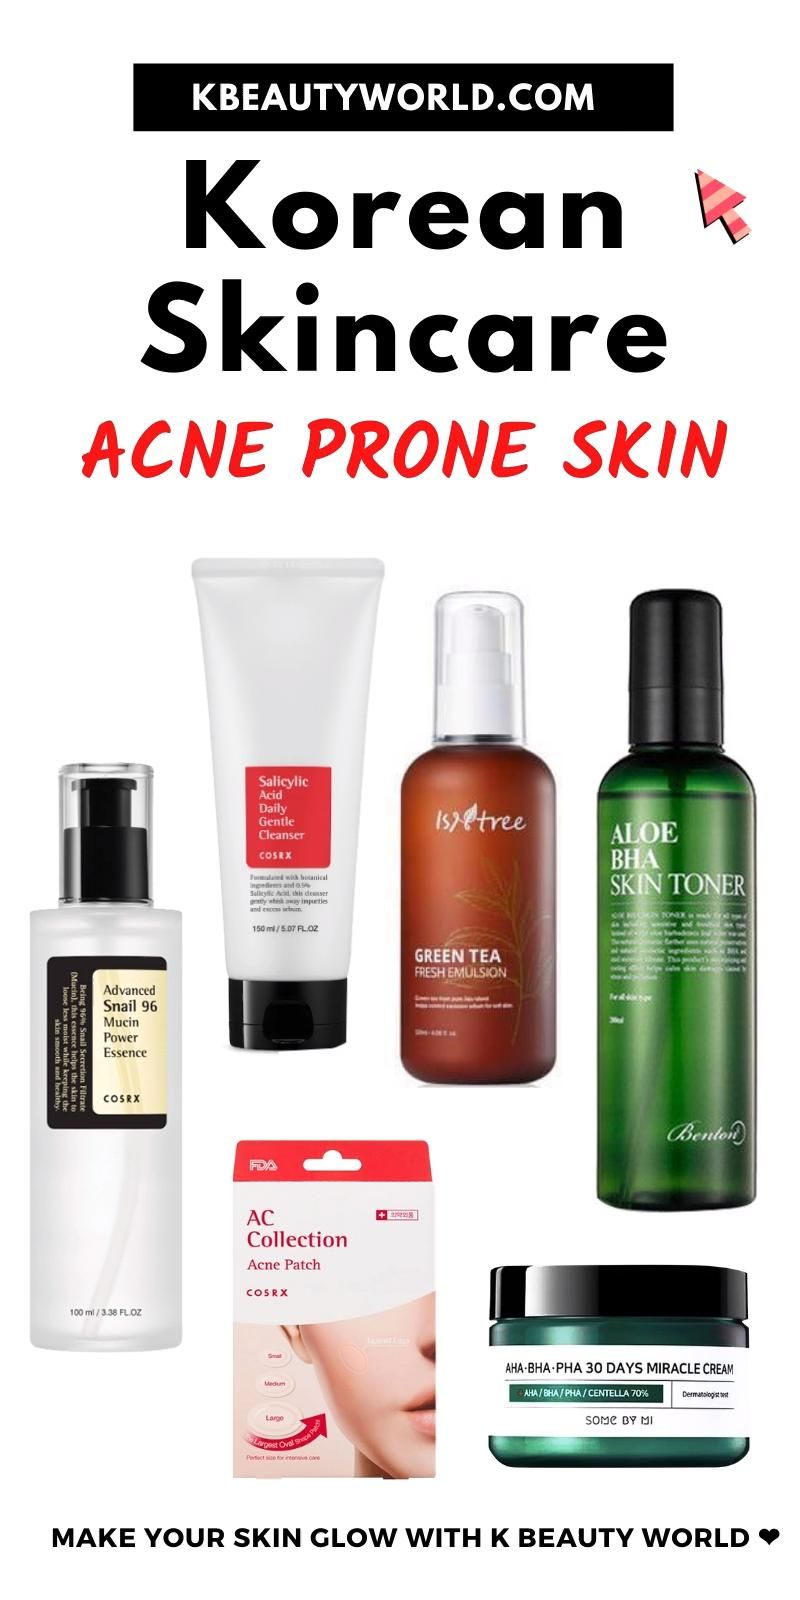 How To Treat Acne With Korean Skin Care Products (